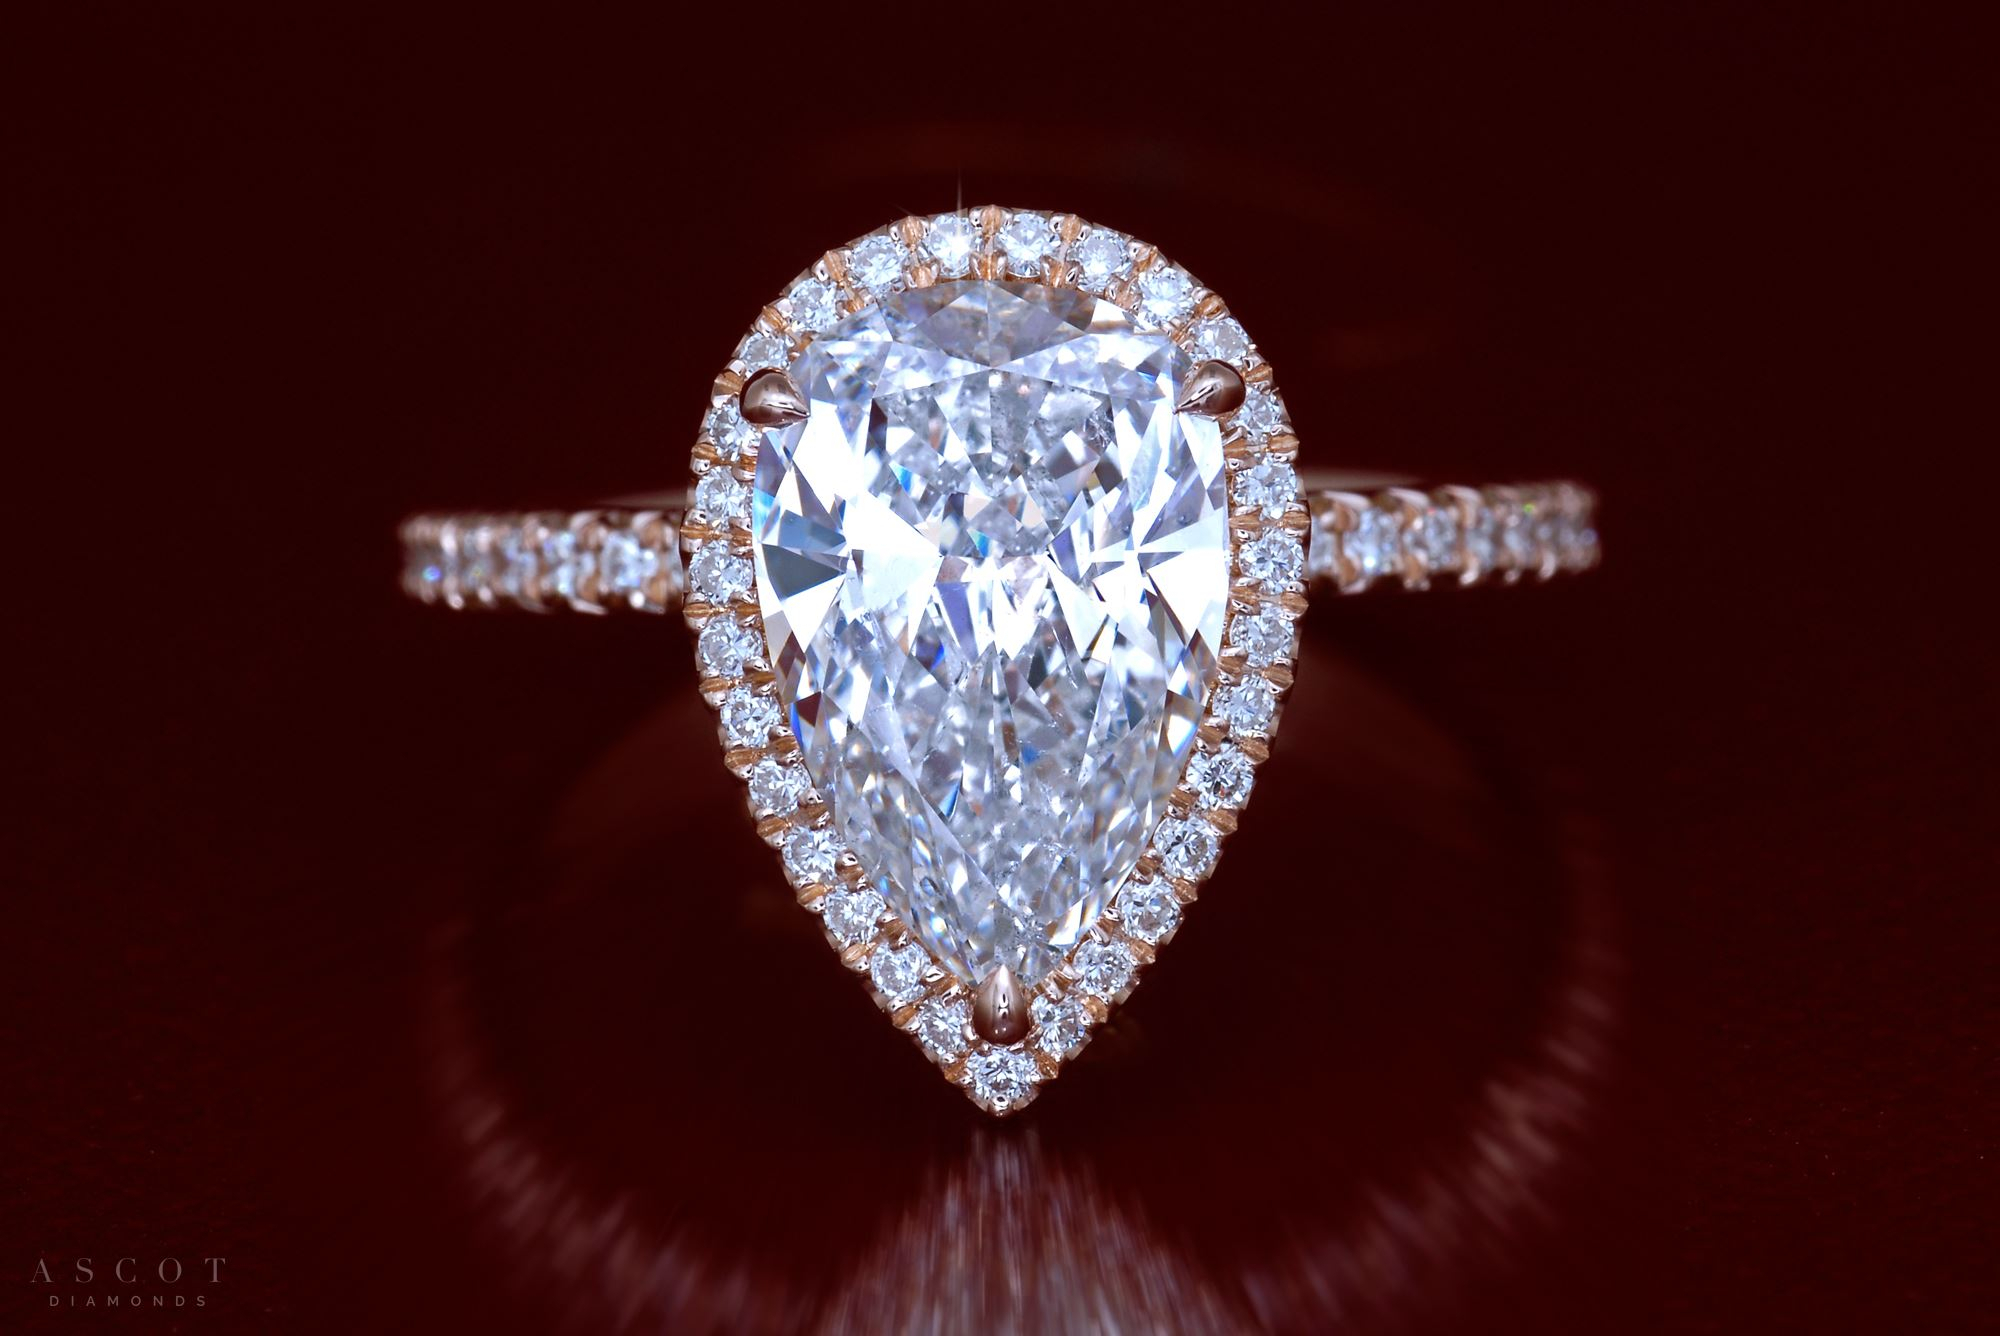 Rose Gold Three Carat Pear Shaped Diamond Engagement Ring Throughout Tryst Pear Shaped Diamond Engagement Rings (Gallery 5 of 25)